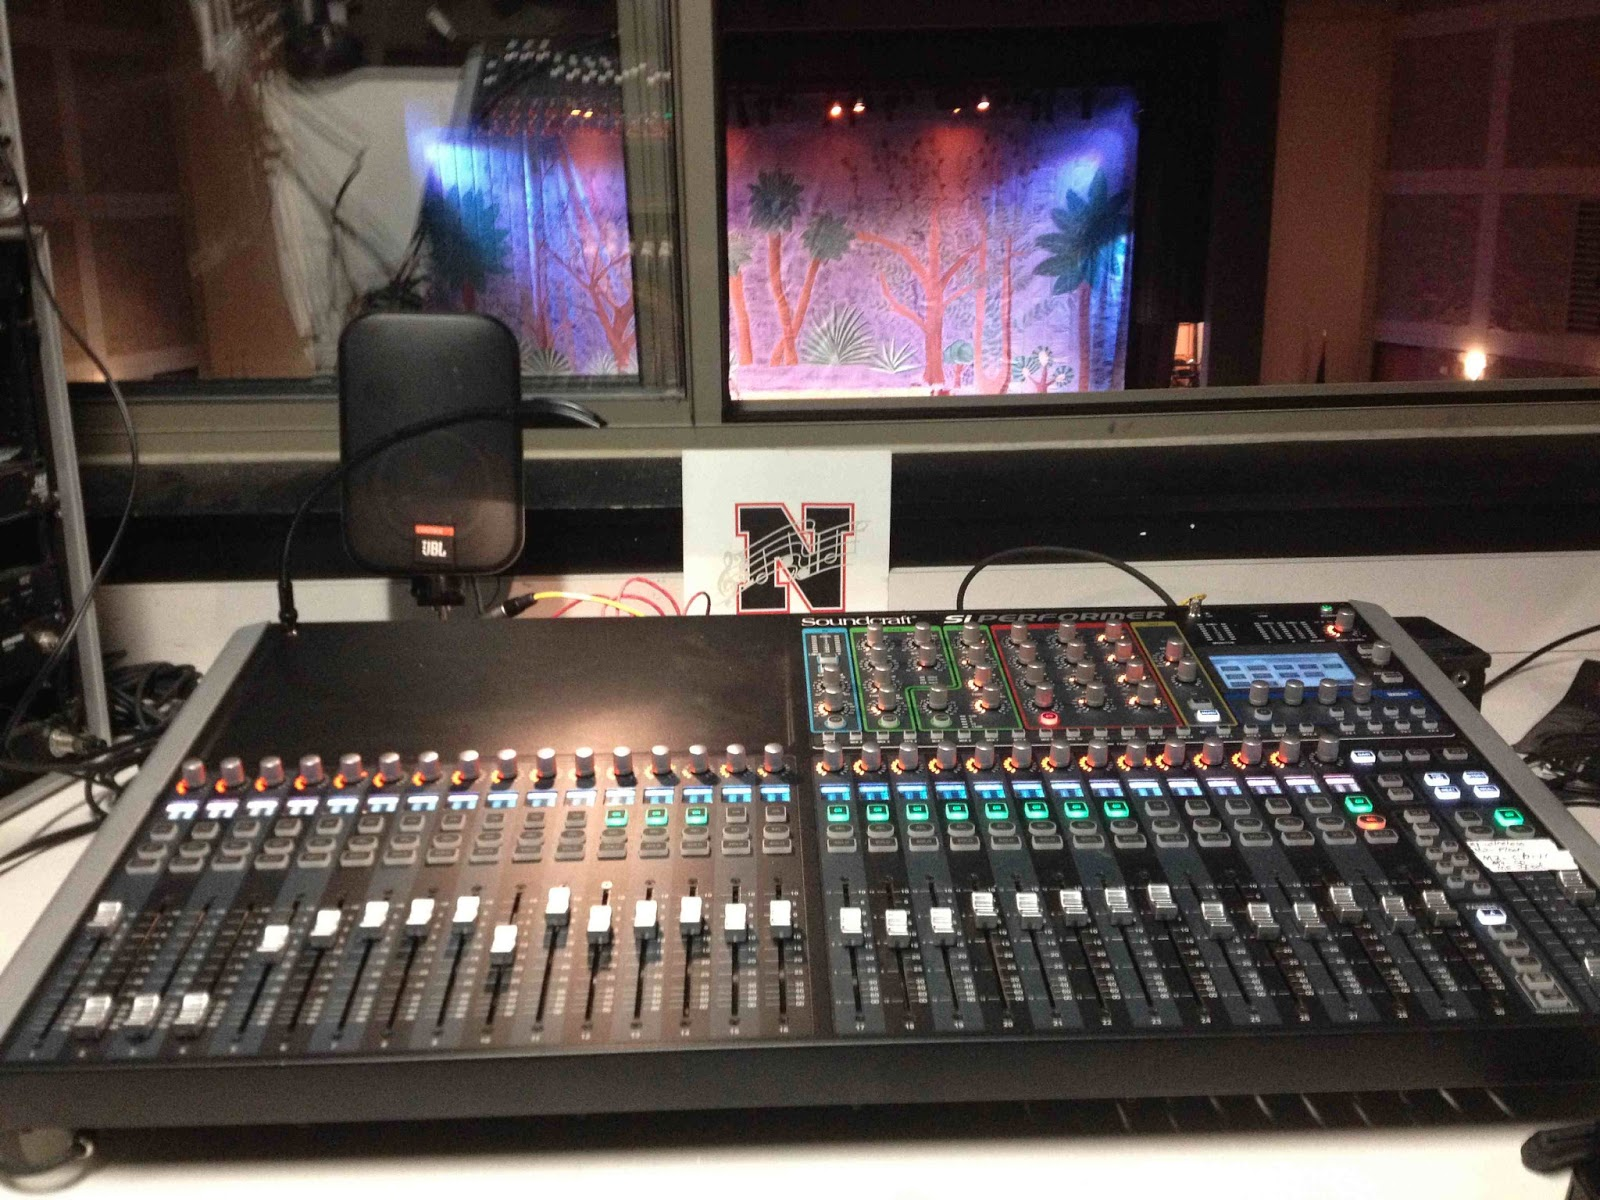 harman soundcraft si performer 3 32 channel console takes the stage at northview high school s. Black Bedroom Furniture Sets. Home Design Ideas